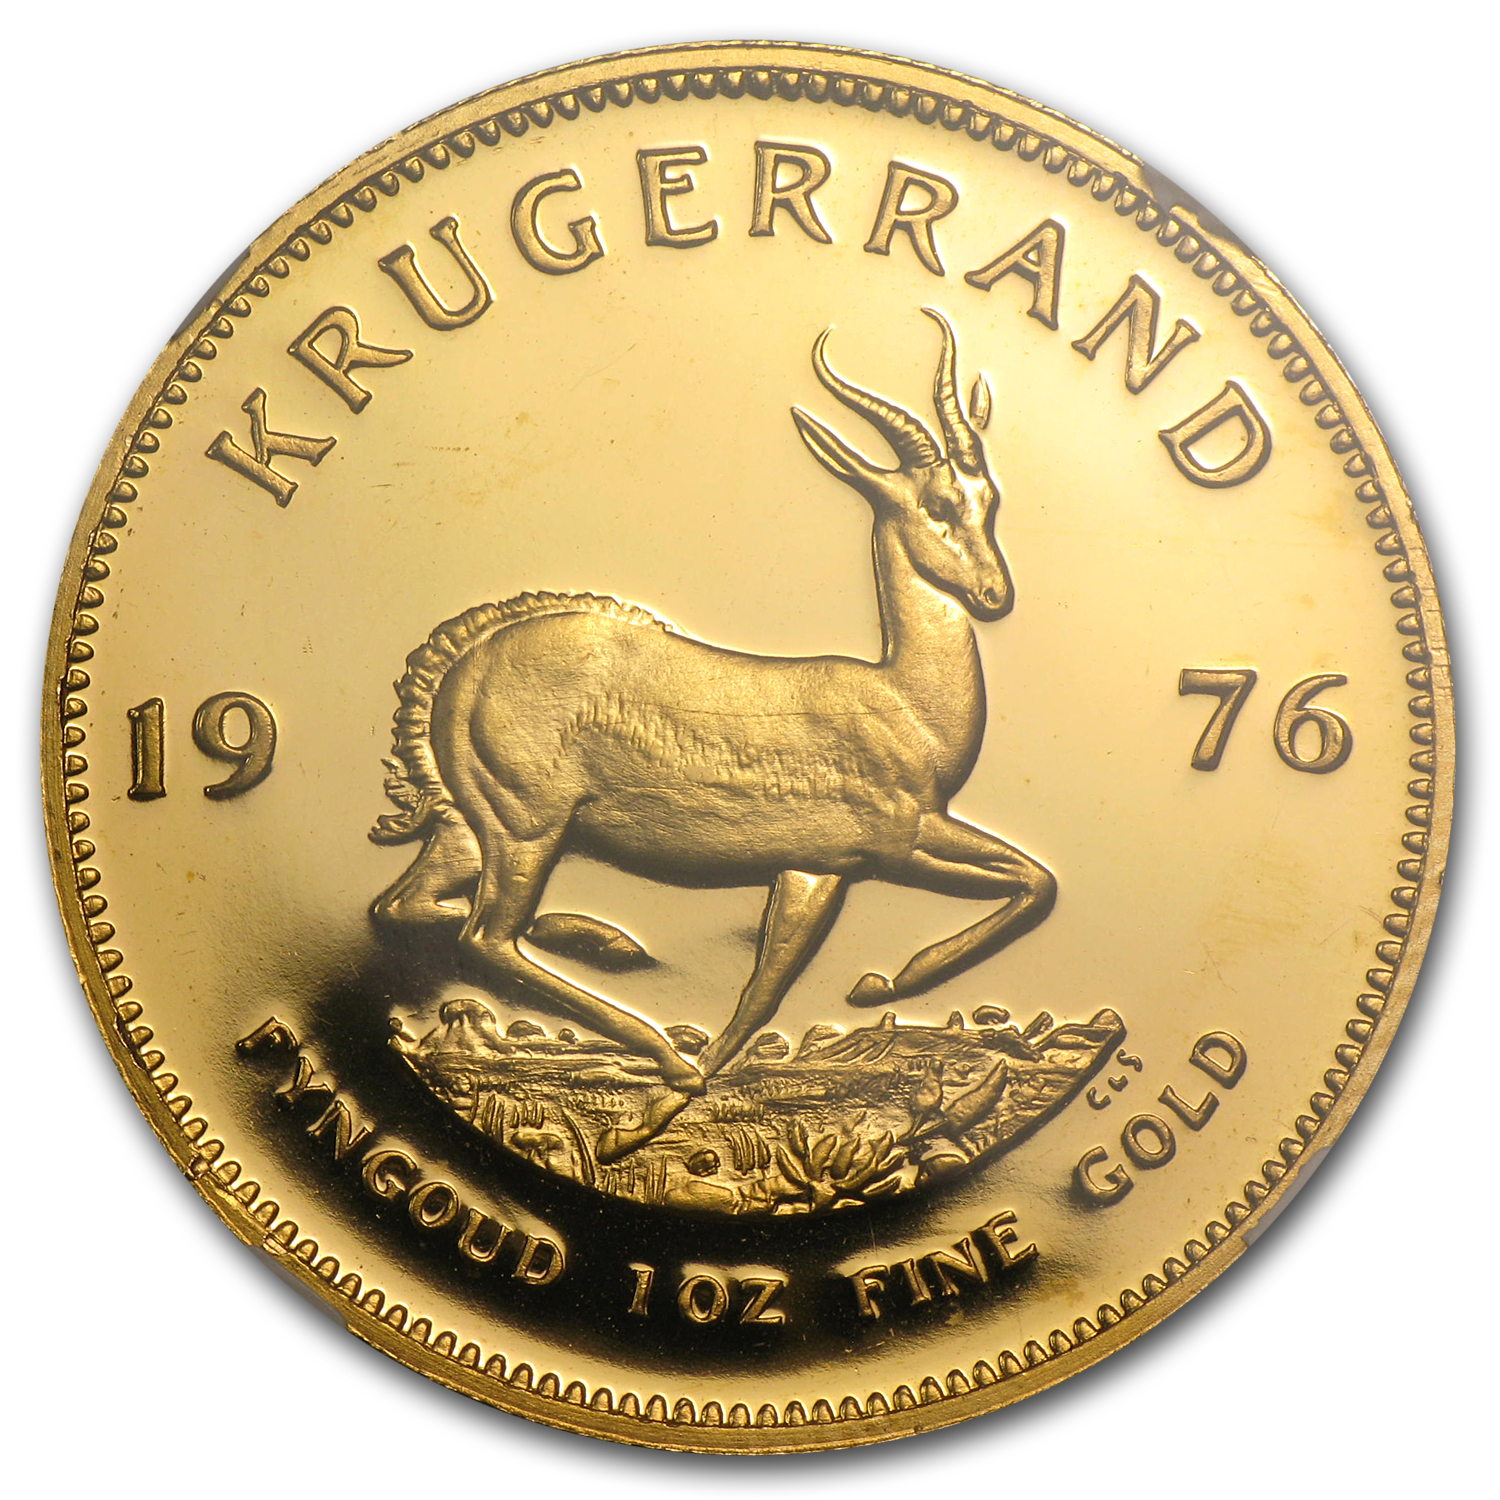 1976 1 oz Gold South African Krugerrand PF-65 NGC